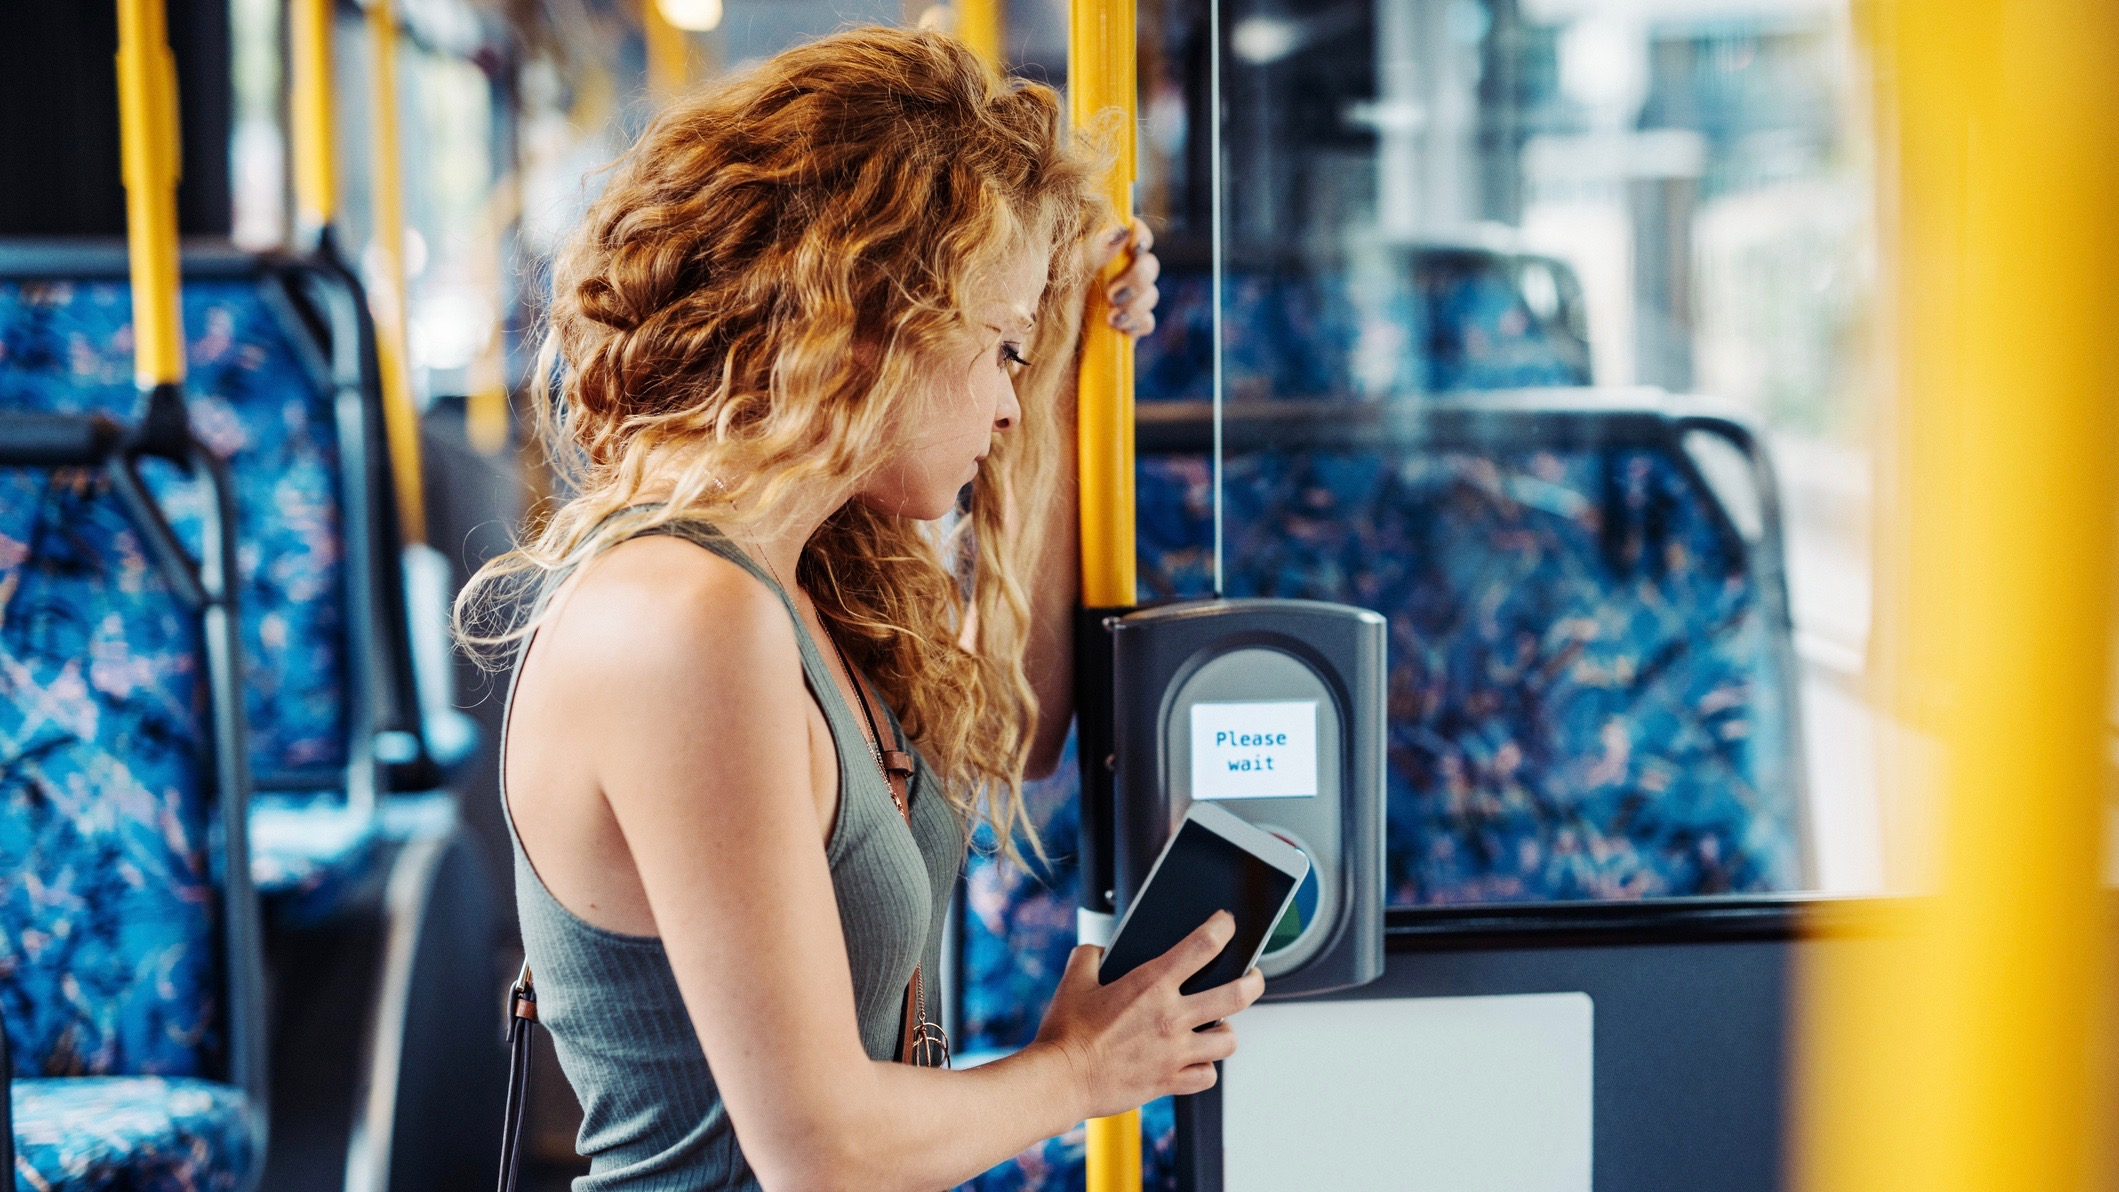 NSW Opal cards will finally go digital in 2020